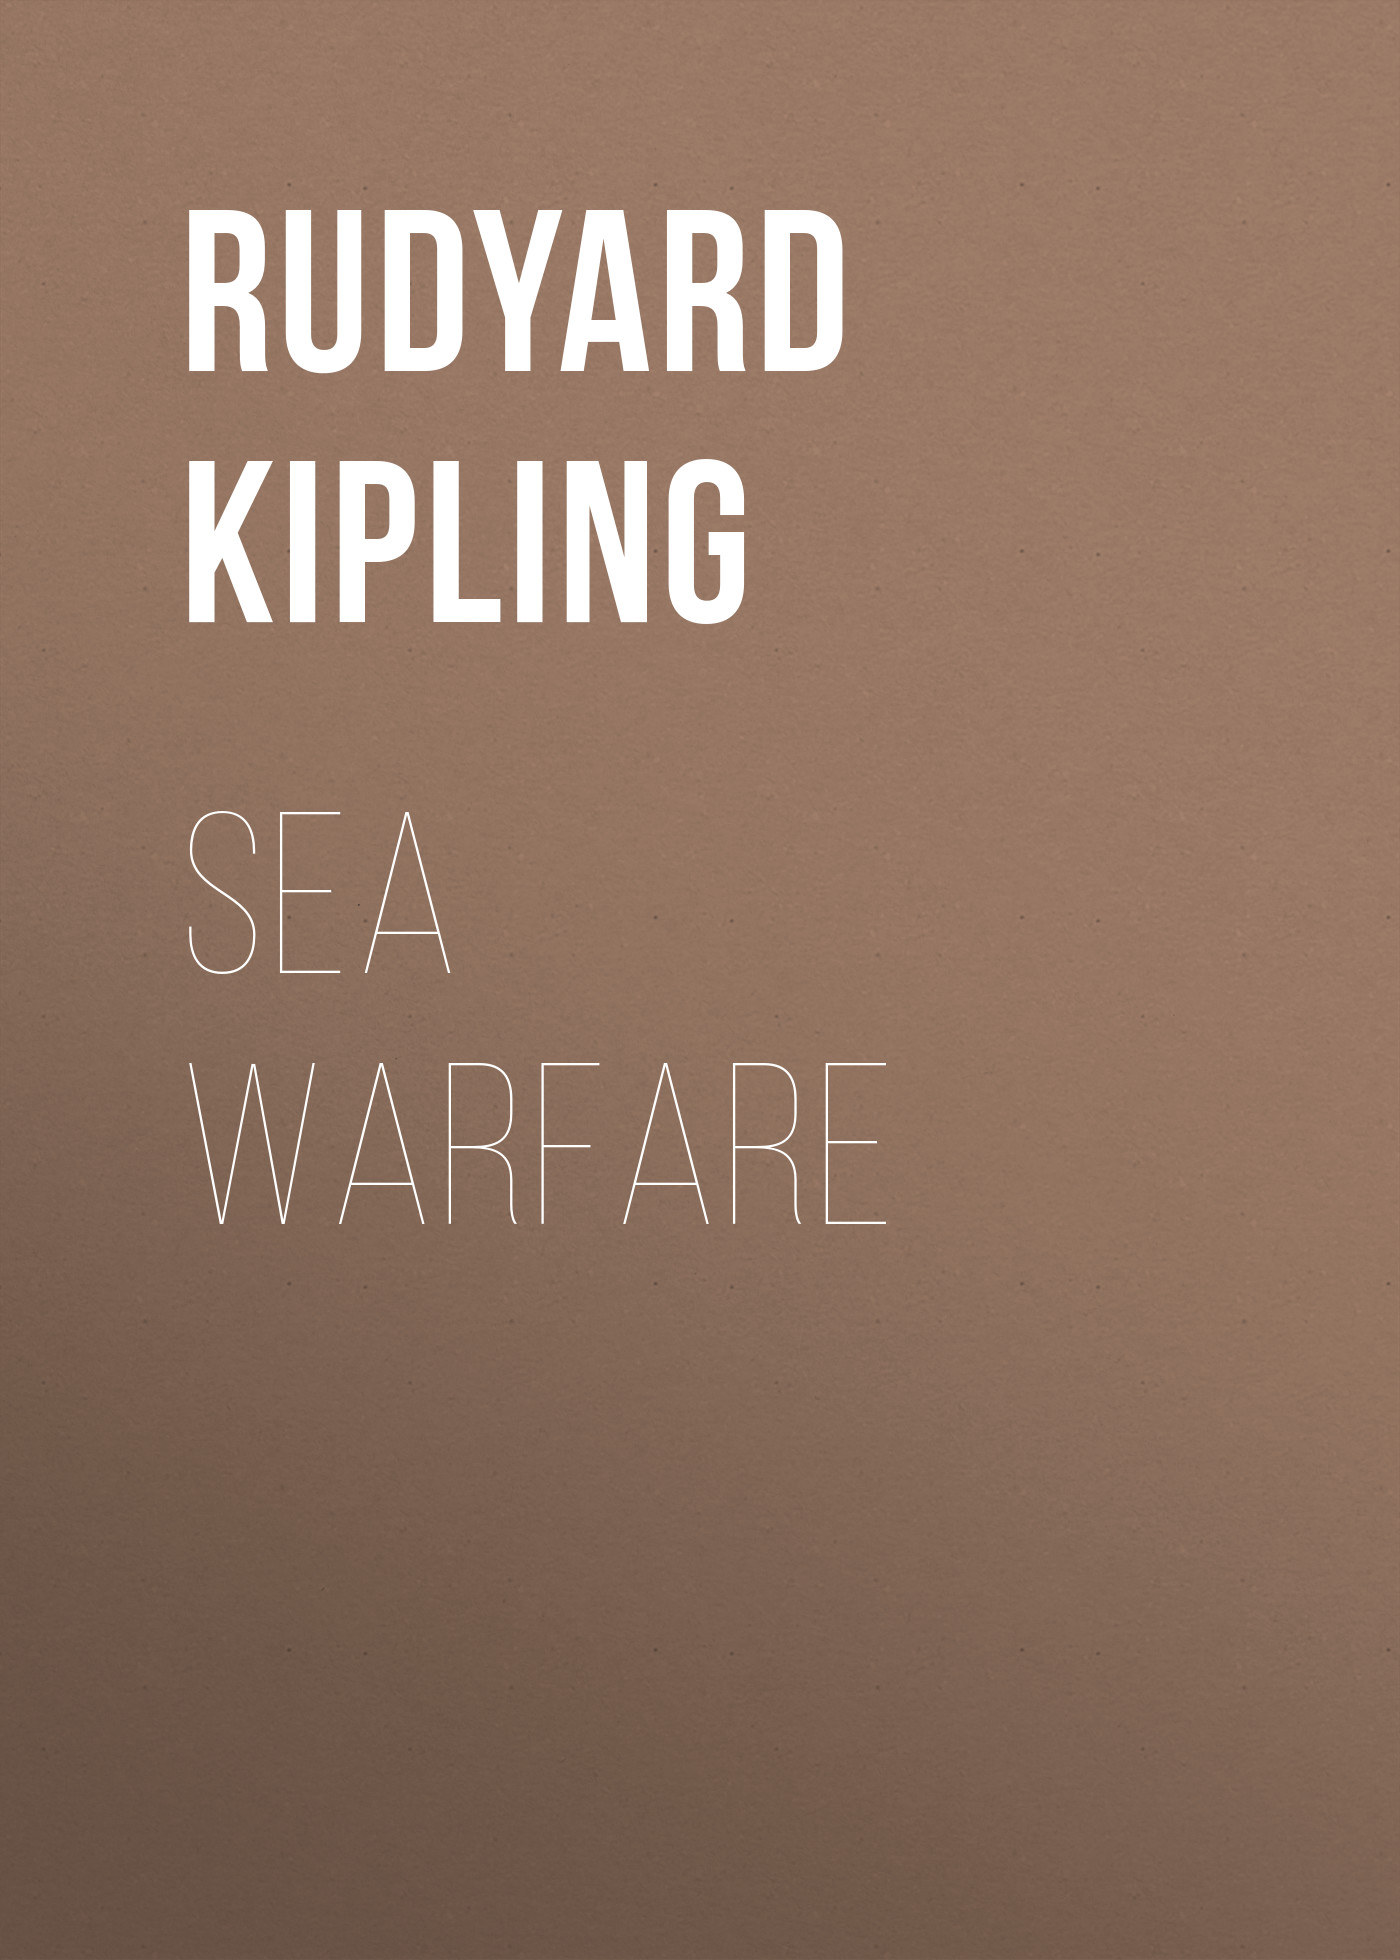 Редьярд Киплинг Sea Warfare редьярд киплинг лиспет